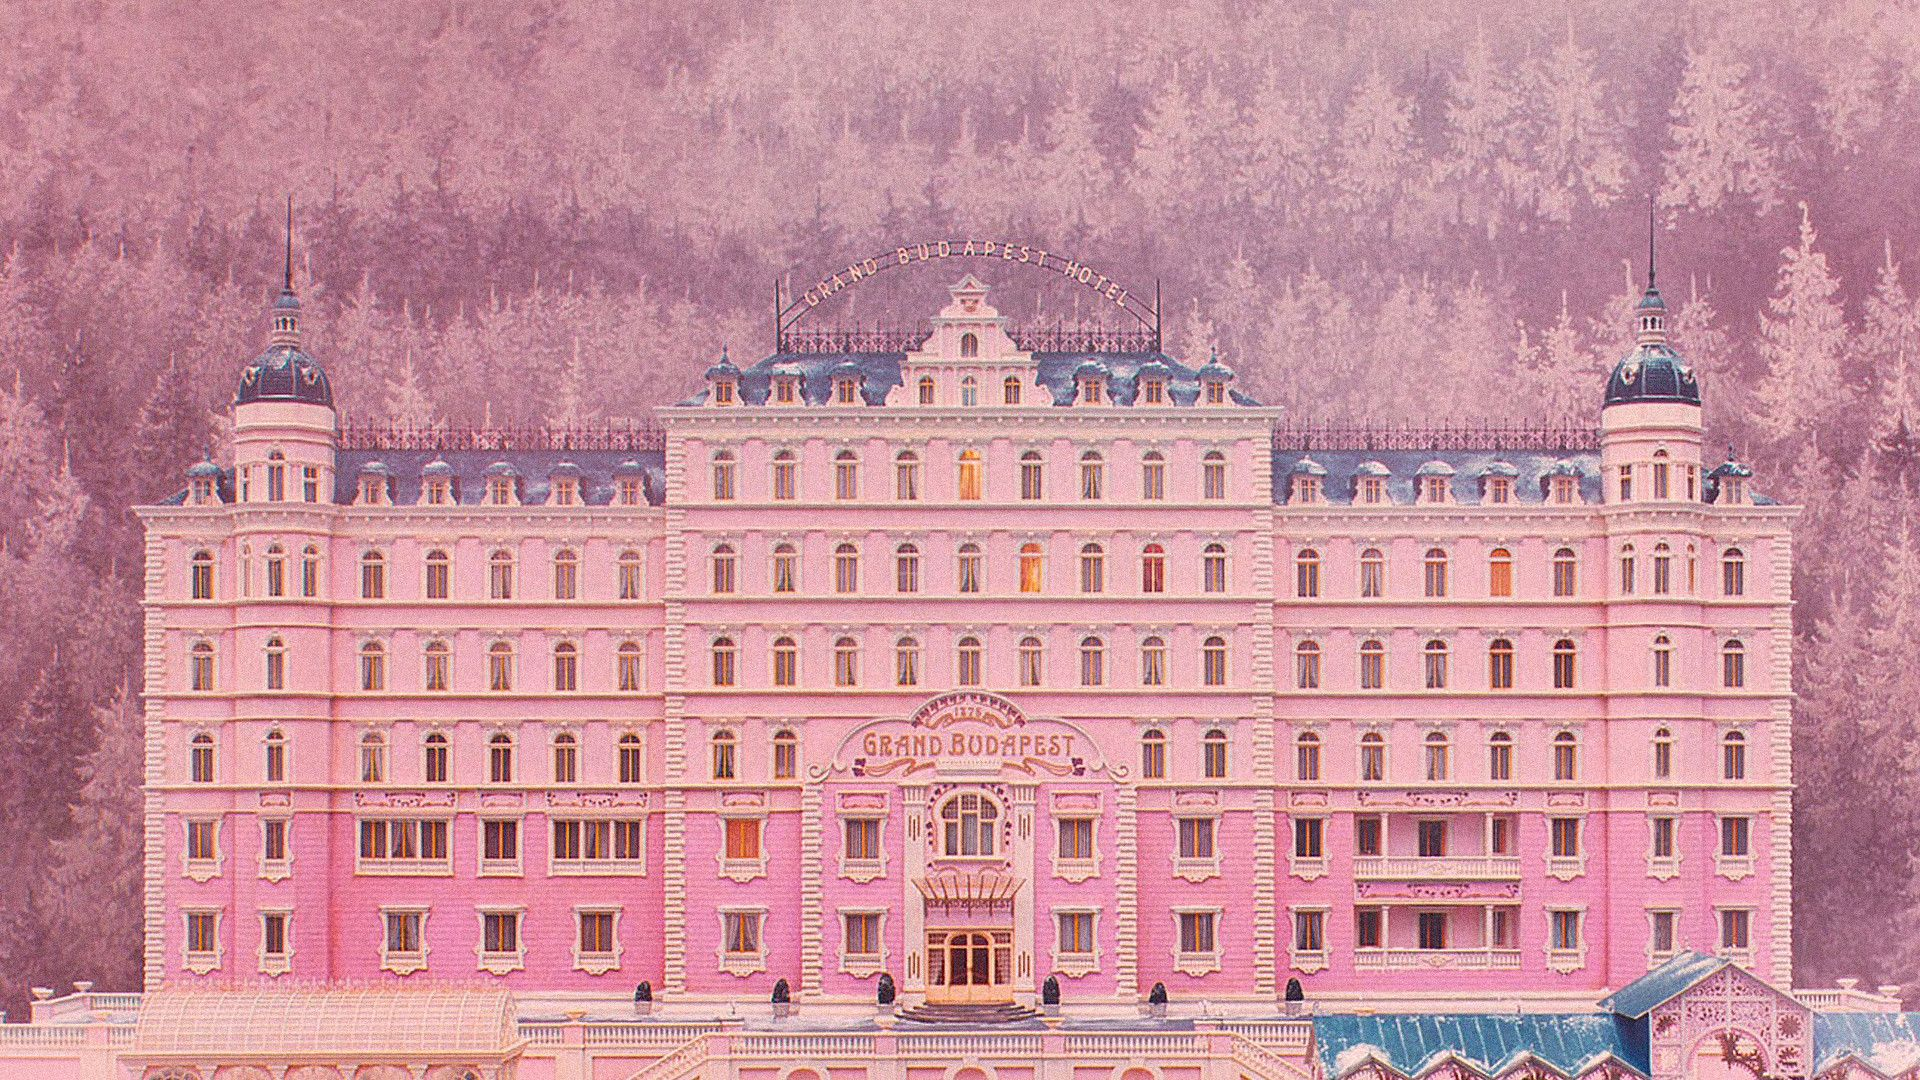 Res 1920x1080 Movies Wallpaper Download The Following Wes Anderson Budapest Hotel Grand Budapest Hotel Wes Anderson Wallpaper